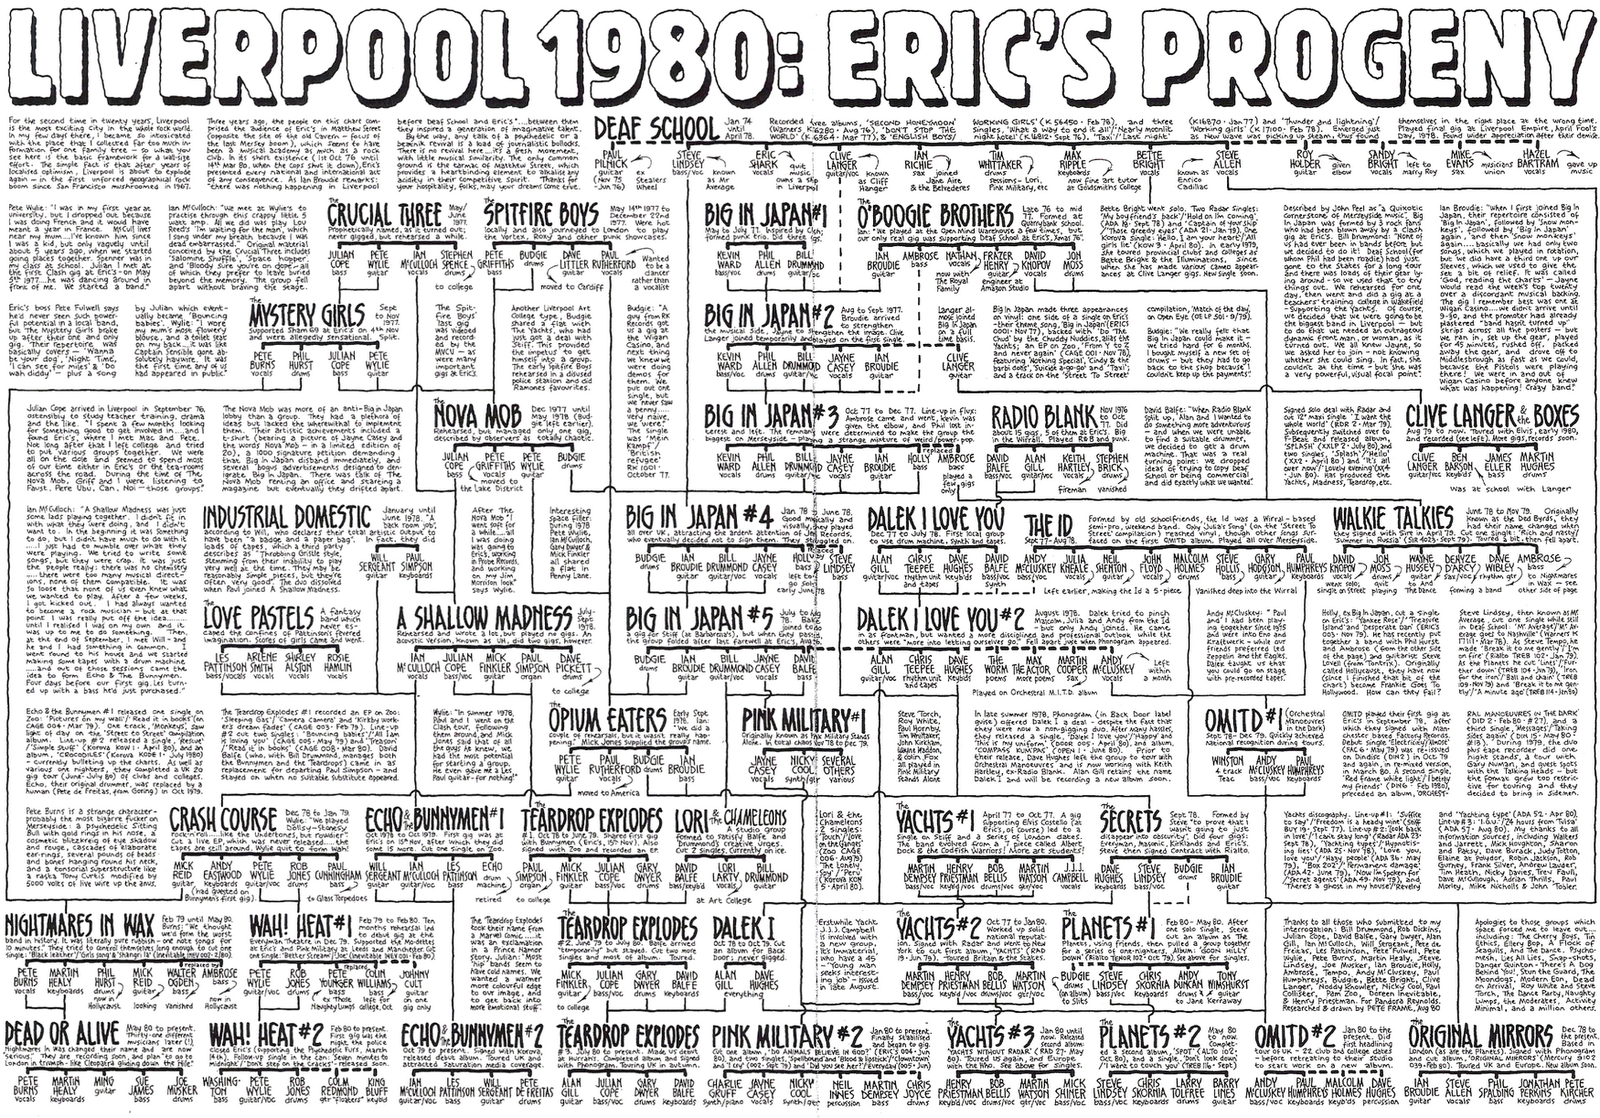 Pete Frame's Liverpool 1980